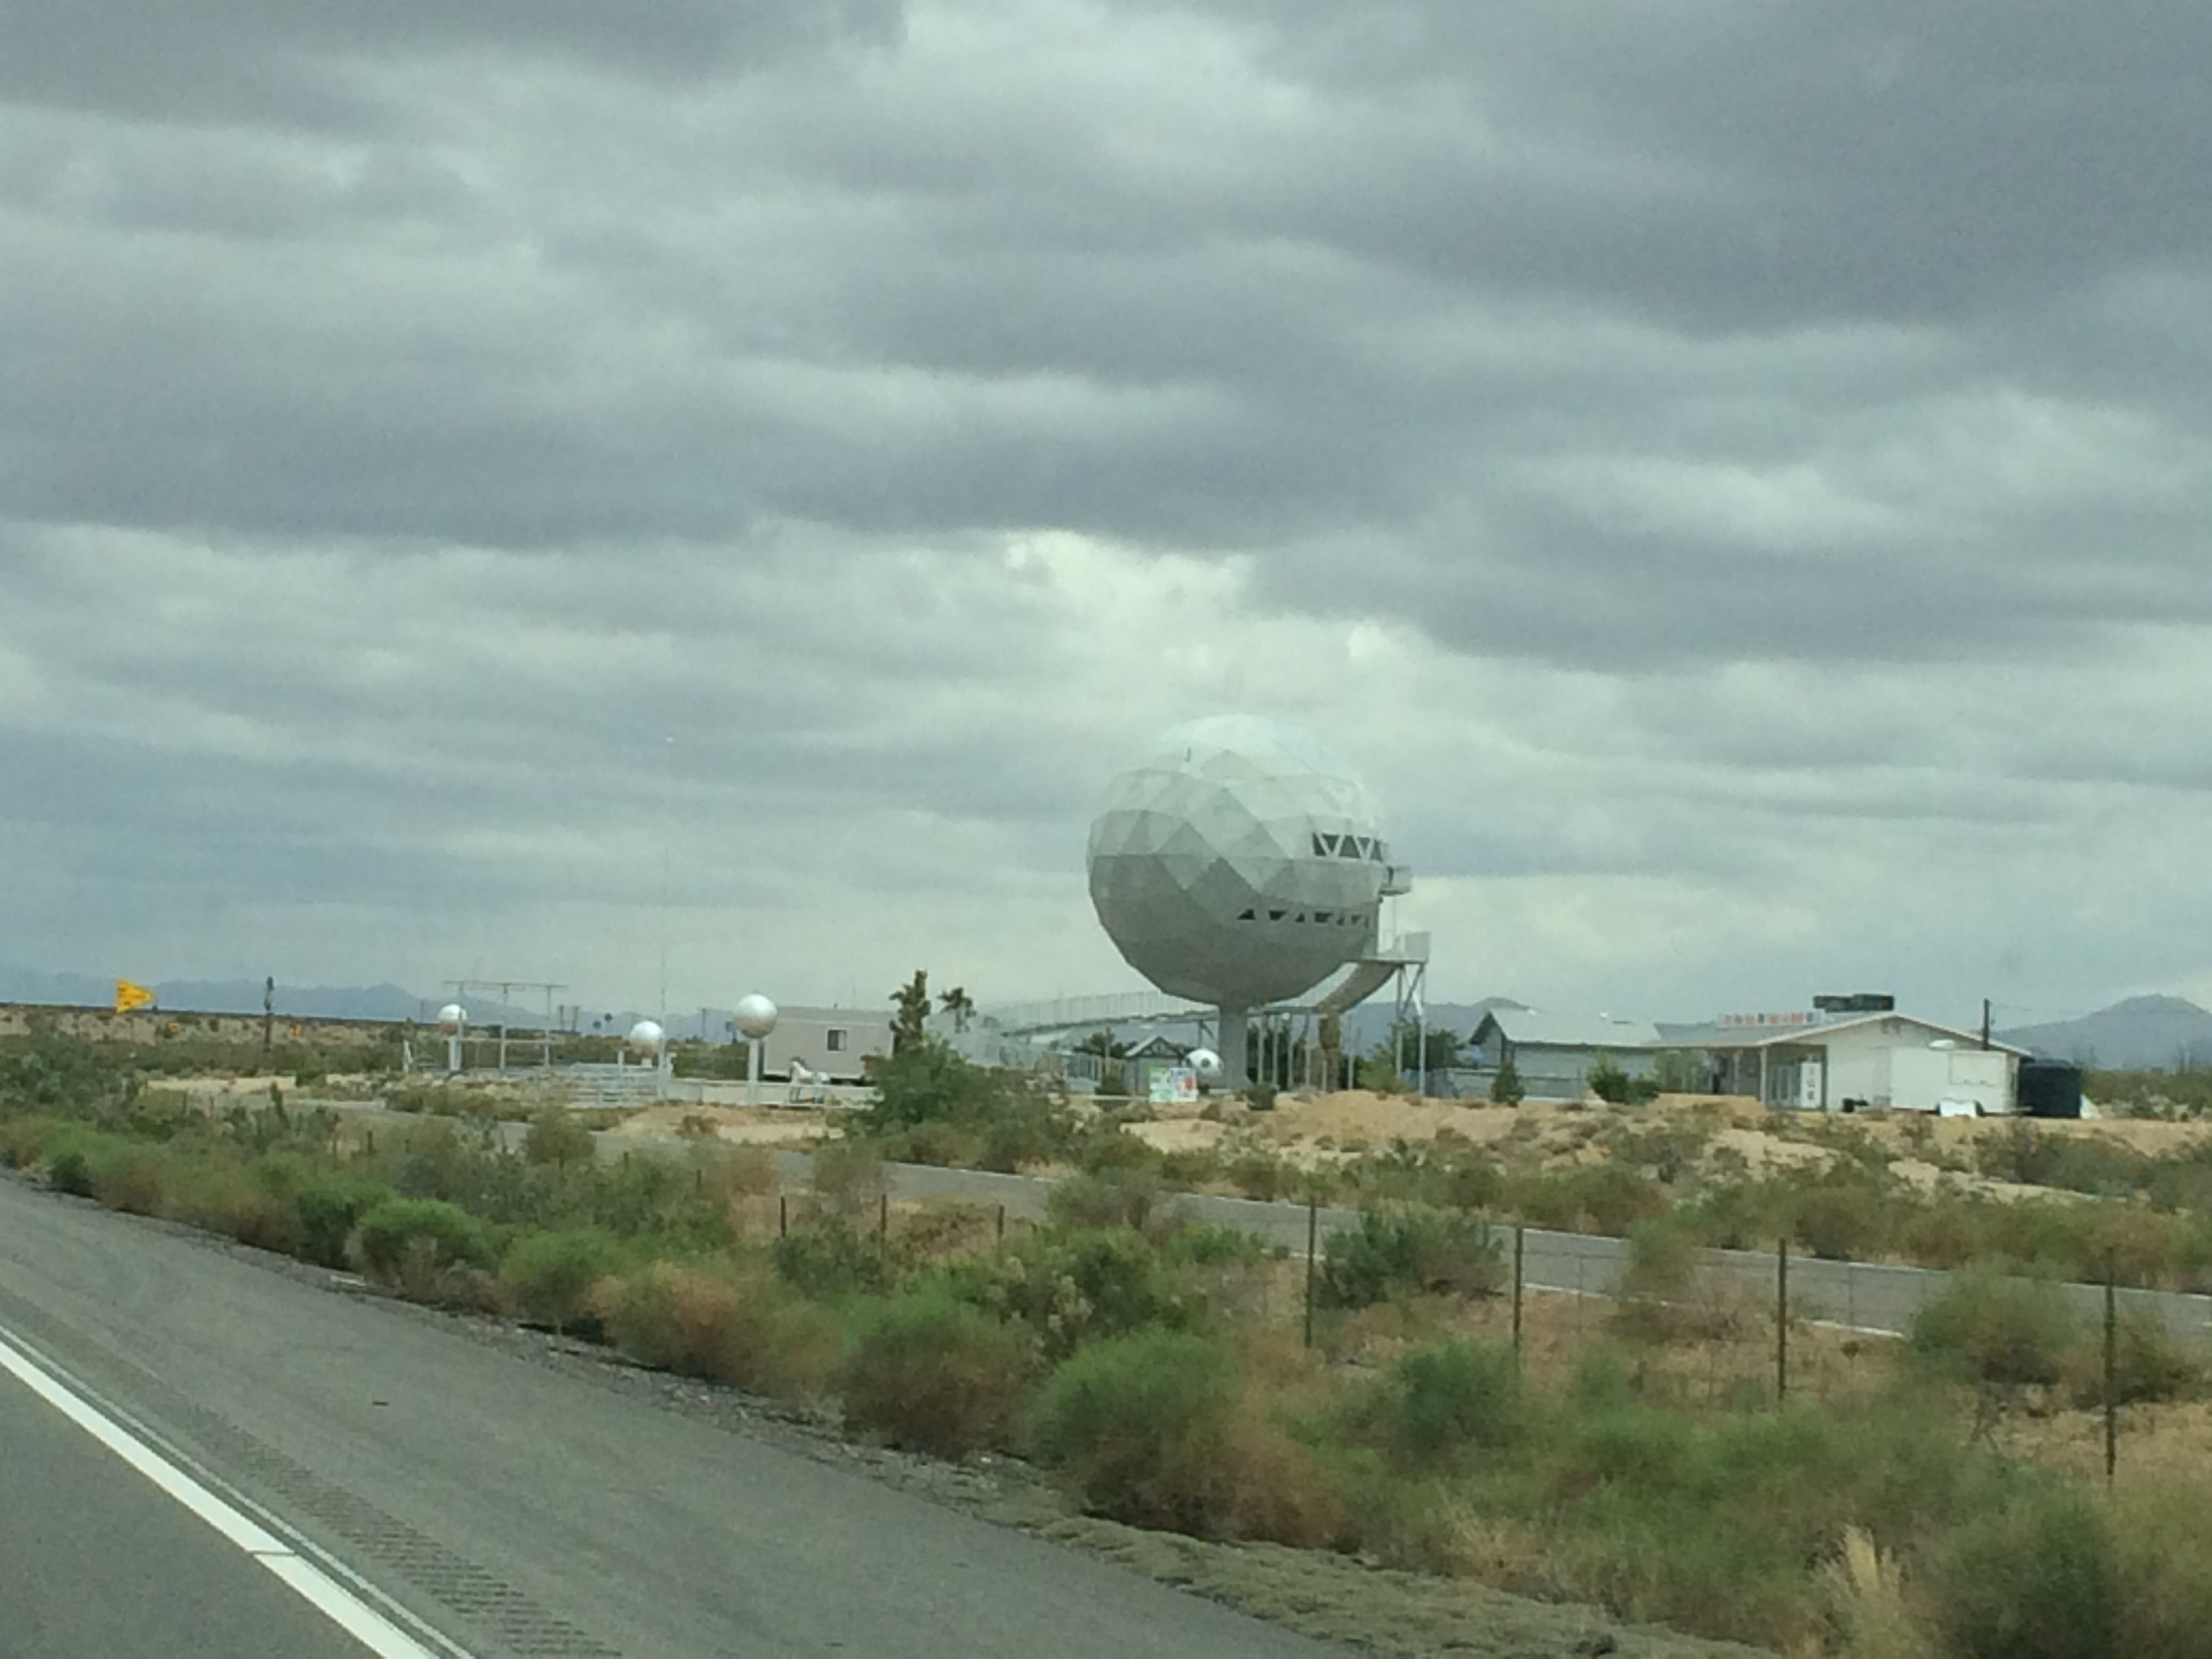 The world's largest golf ball -- or something like that -- in Arizona. Photo by Clay Duda.